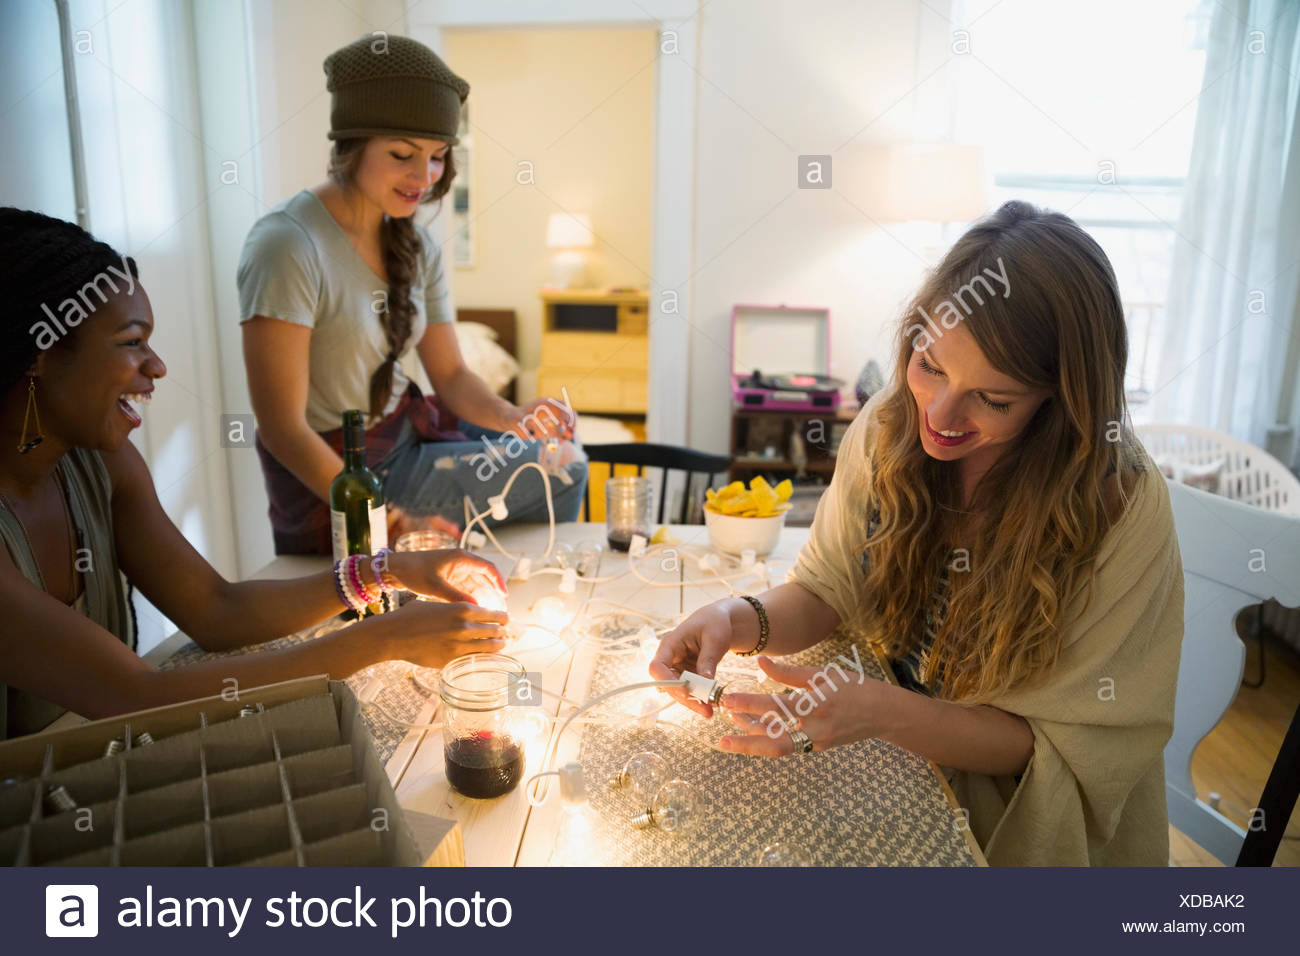 Friends preparing string lights - Stock Image